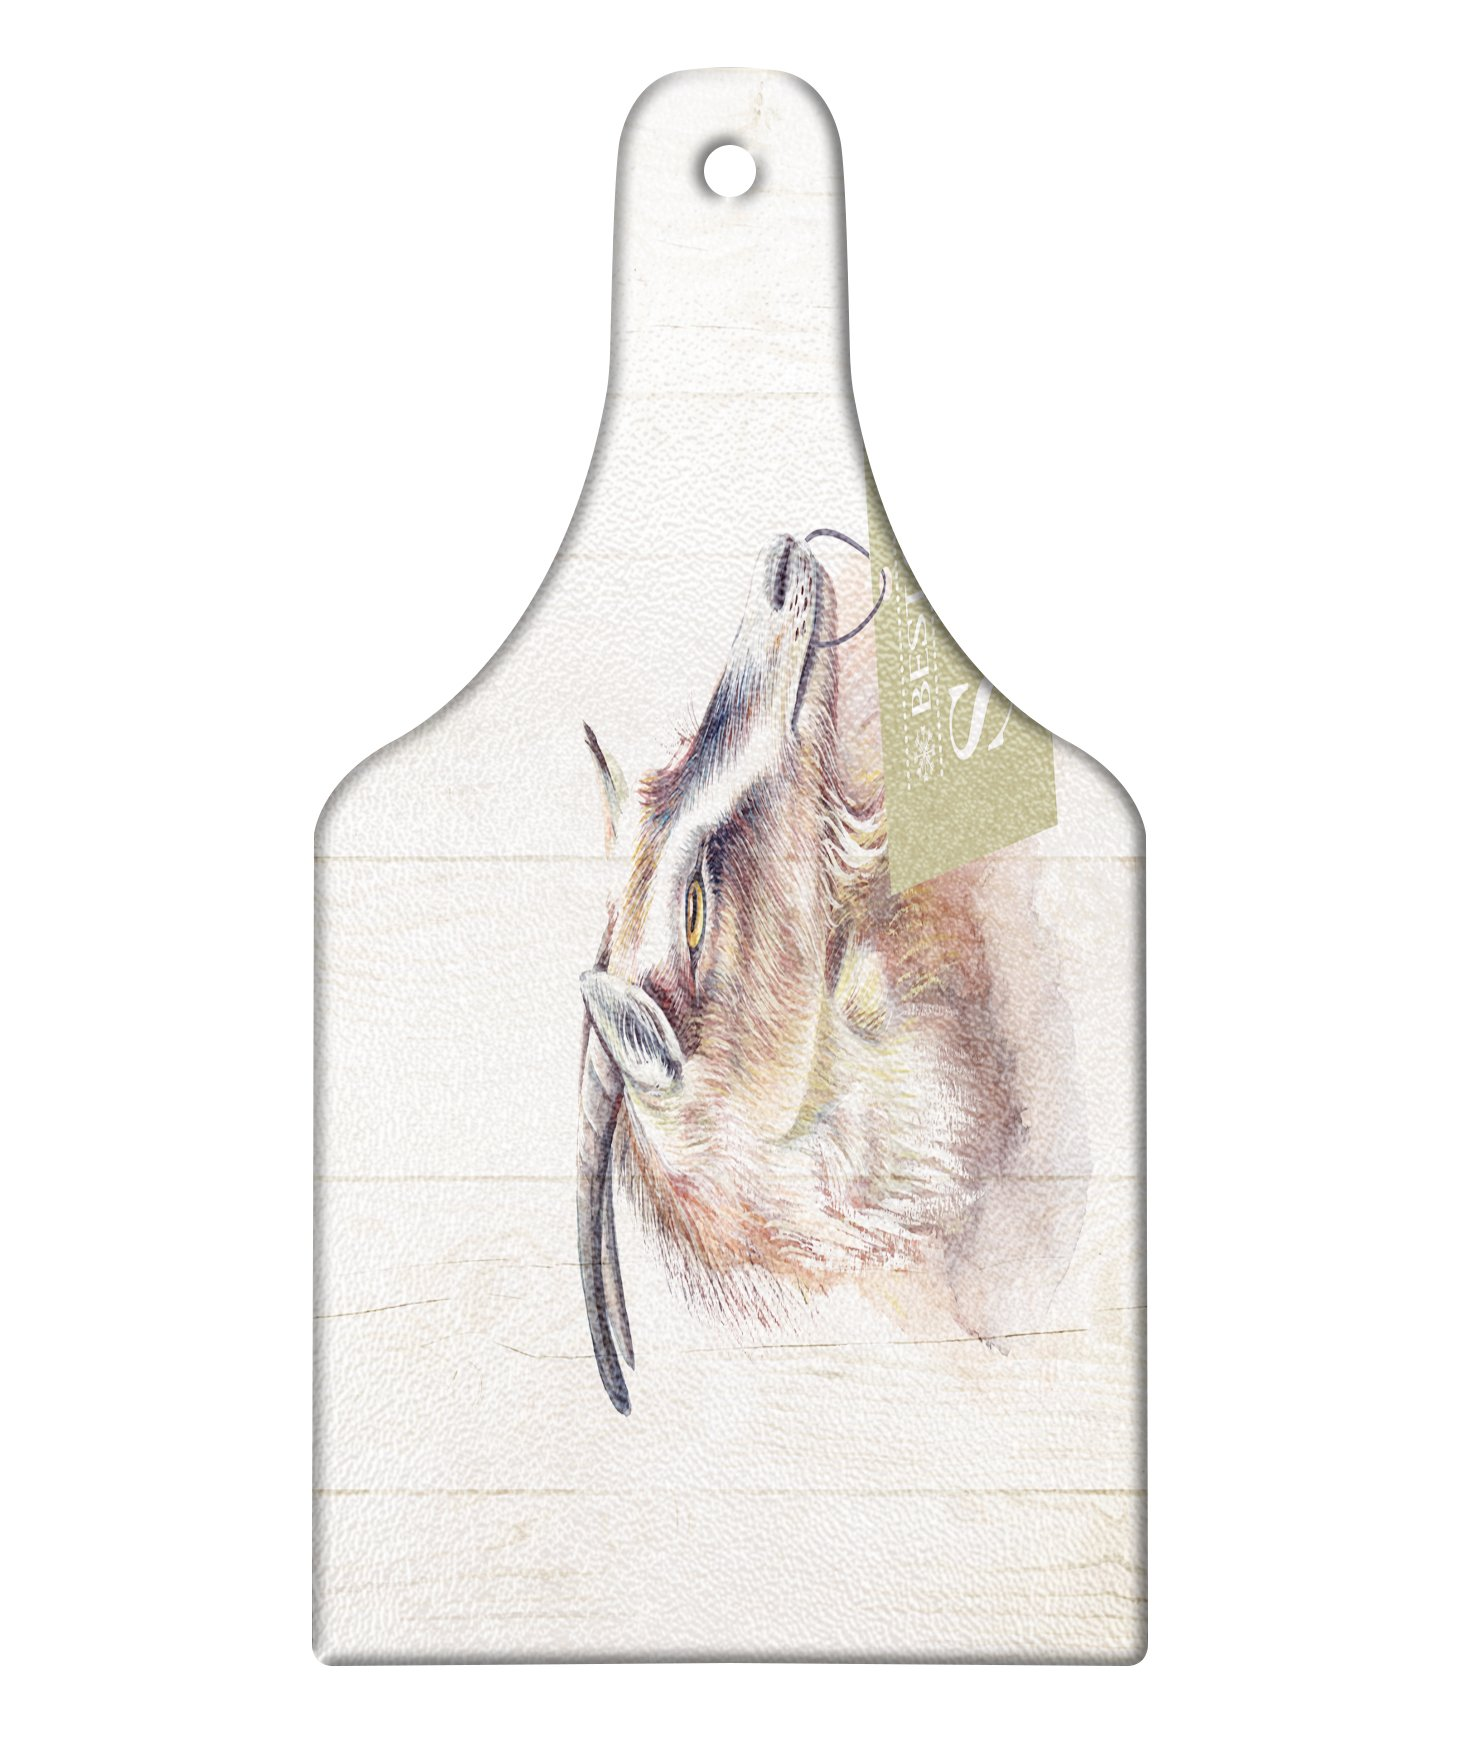 Lunarable Goat Cutting Board, Farm Animal Portrait on Wooden Board Backdrop Domesticated Furry Mammal Vintage, Decorative Tempered Glass Cutting and Serving Board, Wine Bottle Shape, Ivory Brown Black by Lunarable